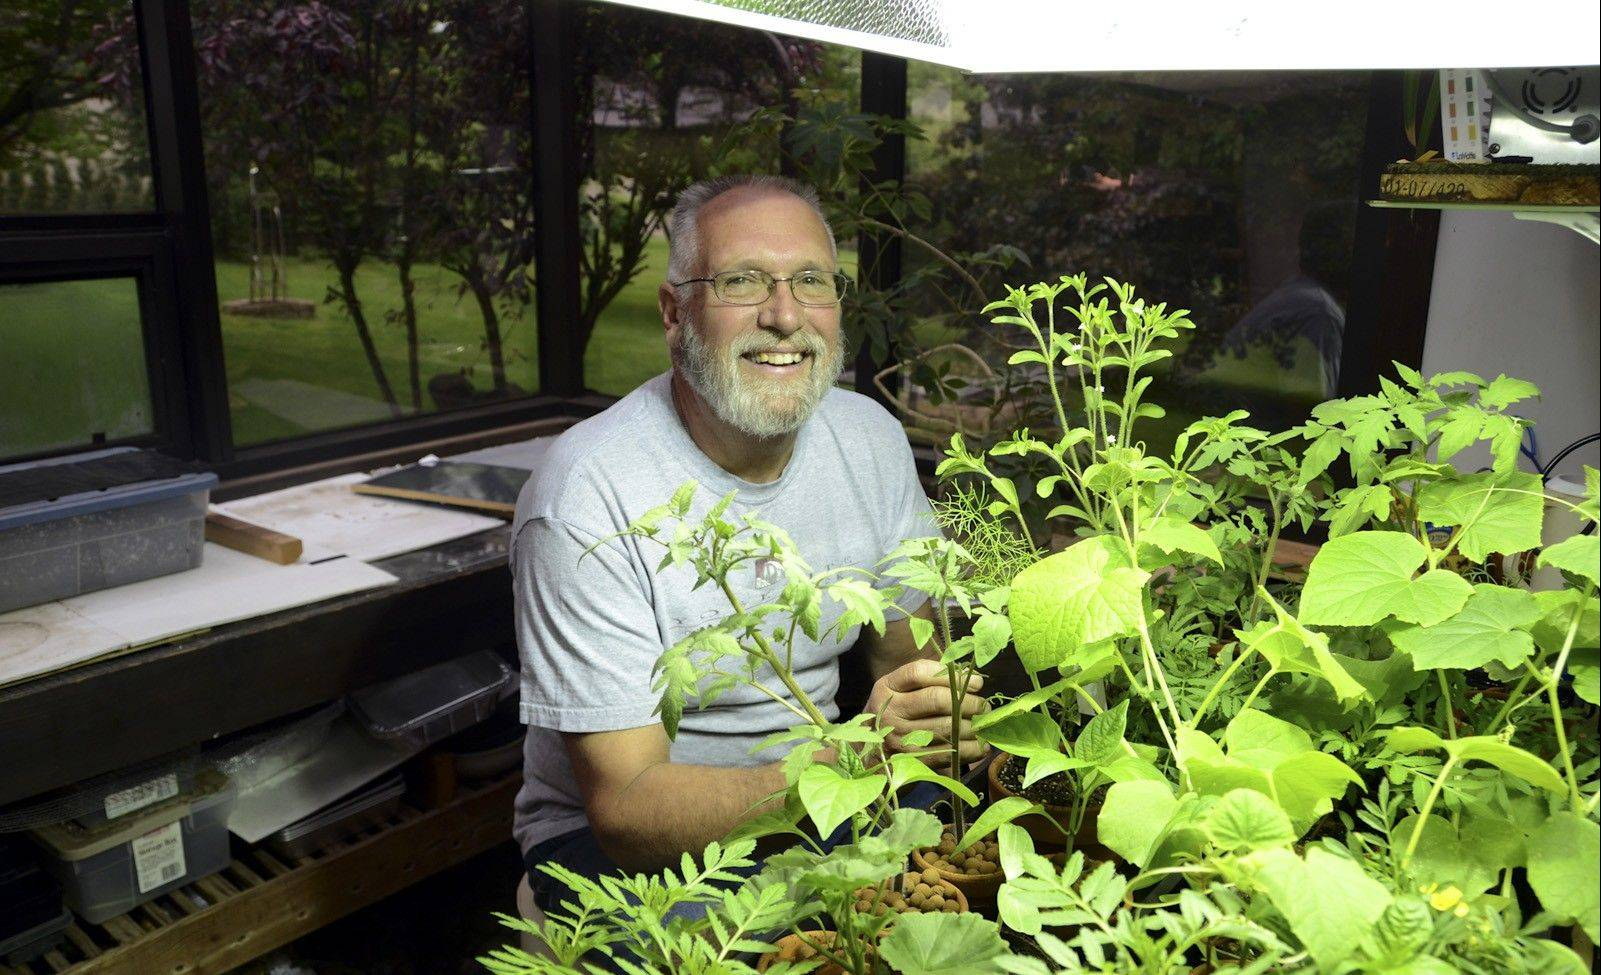 Hank Brinzer grows plants using a technique called aquaponics. Water from a fish tank is pumped up to a tray of plants to feed them. The water then slowly drains back into the tank.